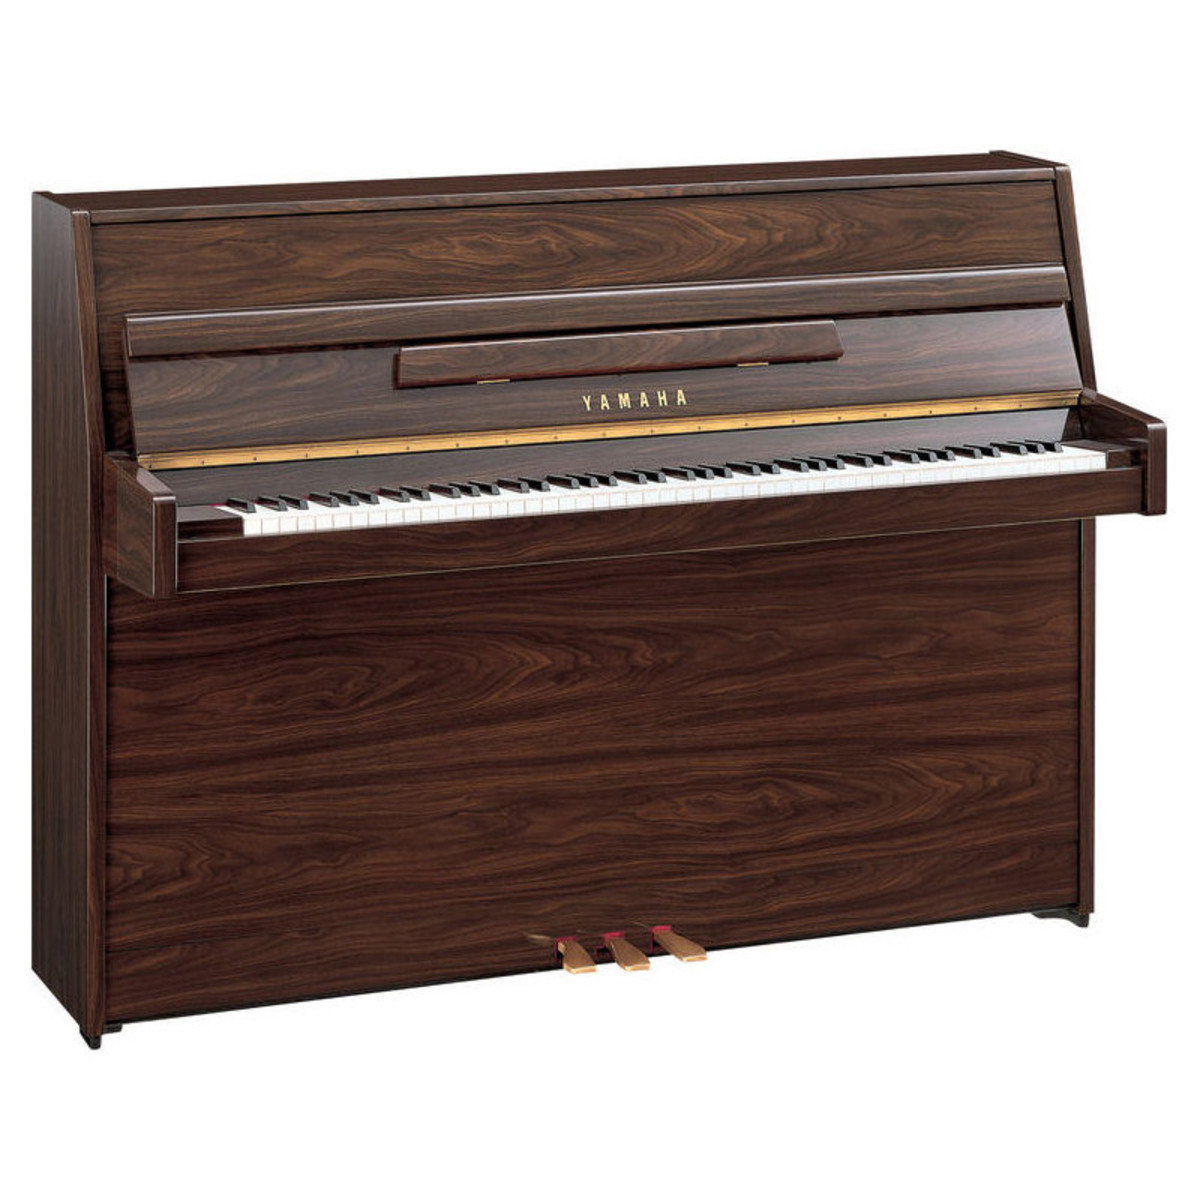 yamaha b1 upright acoustic piano simulated walnut at gear4music. Black Bedroom Furniture Sets. Home Design Ideas